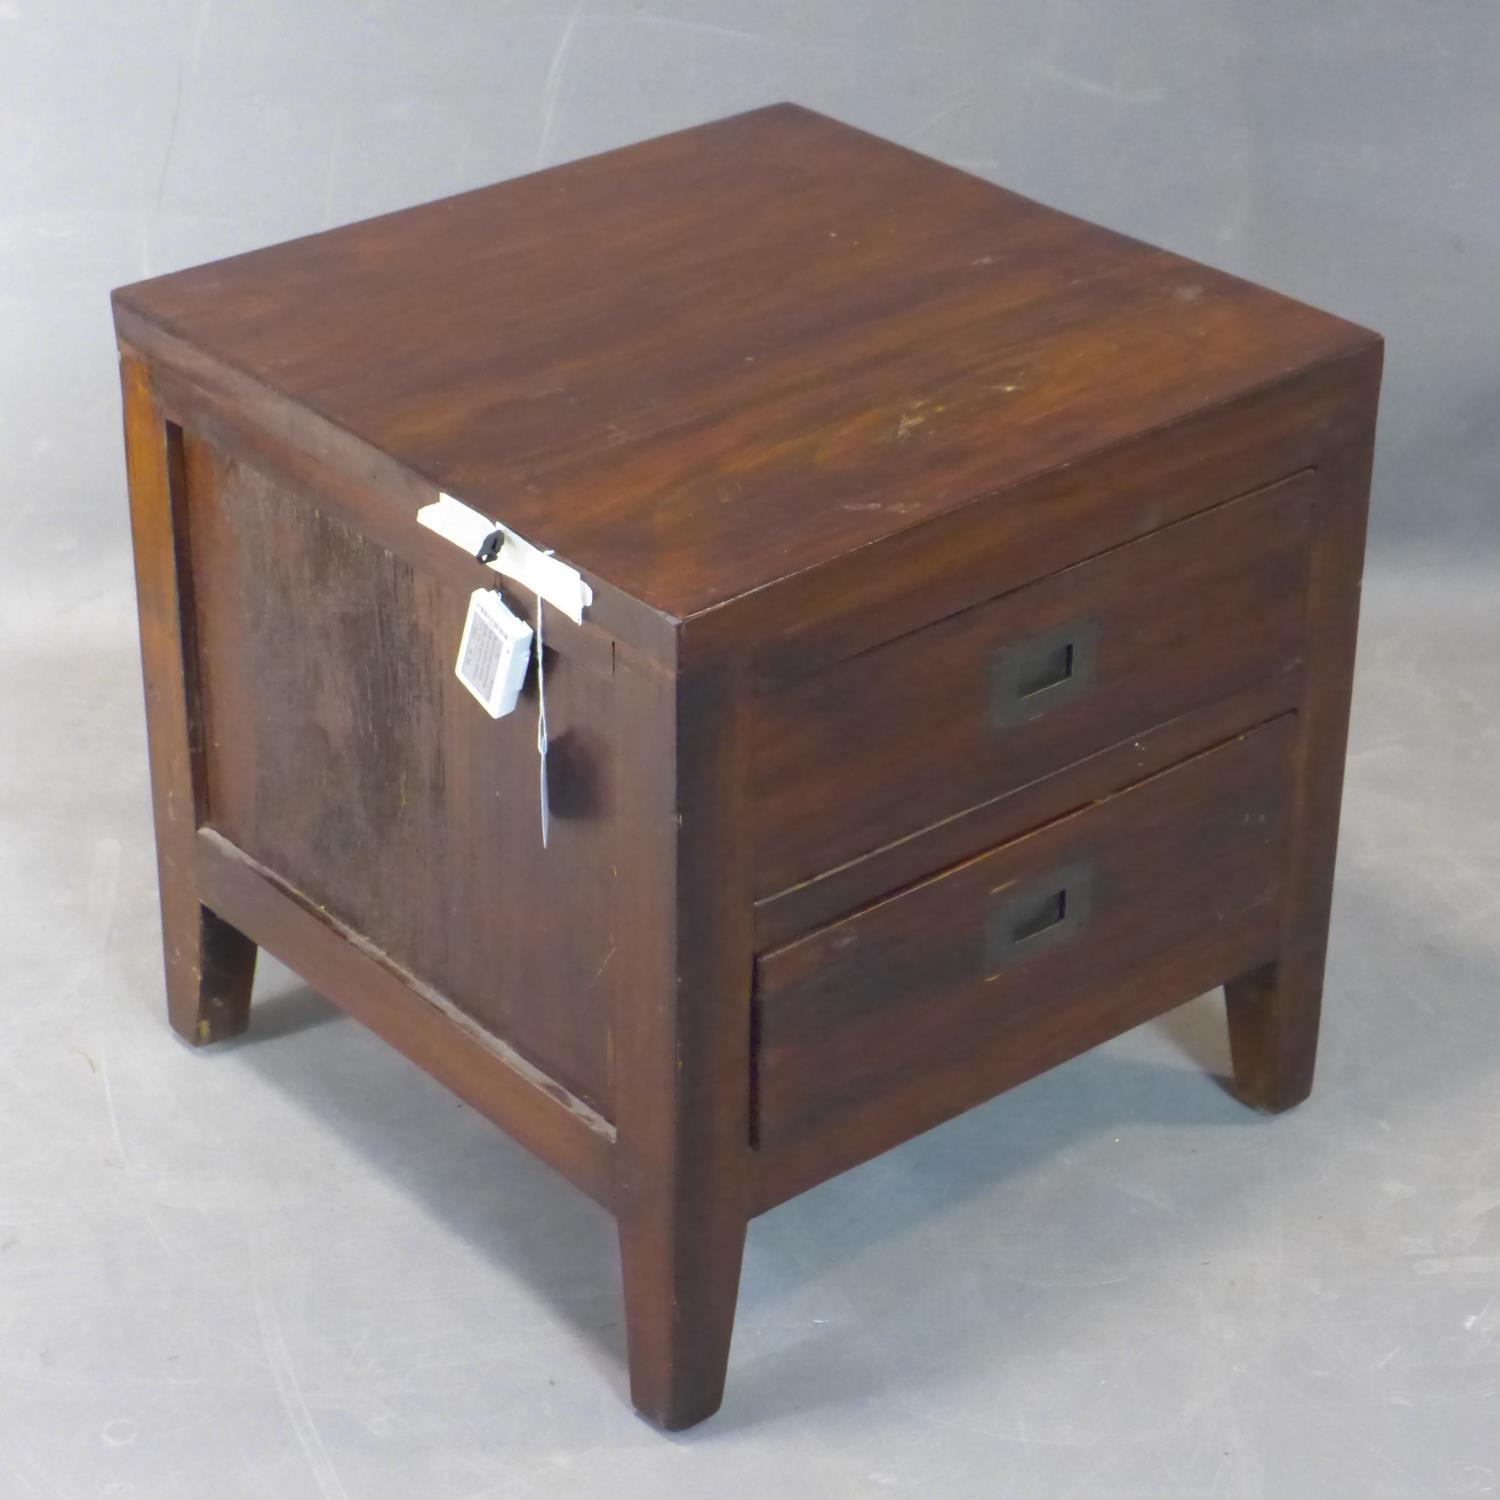 Lot 285 - A Lombok chest of drawers, Indonesian teak wood, H.50, W.50, D.50 cm